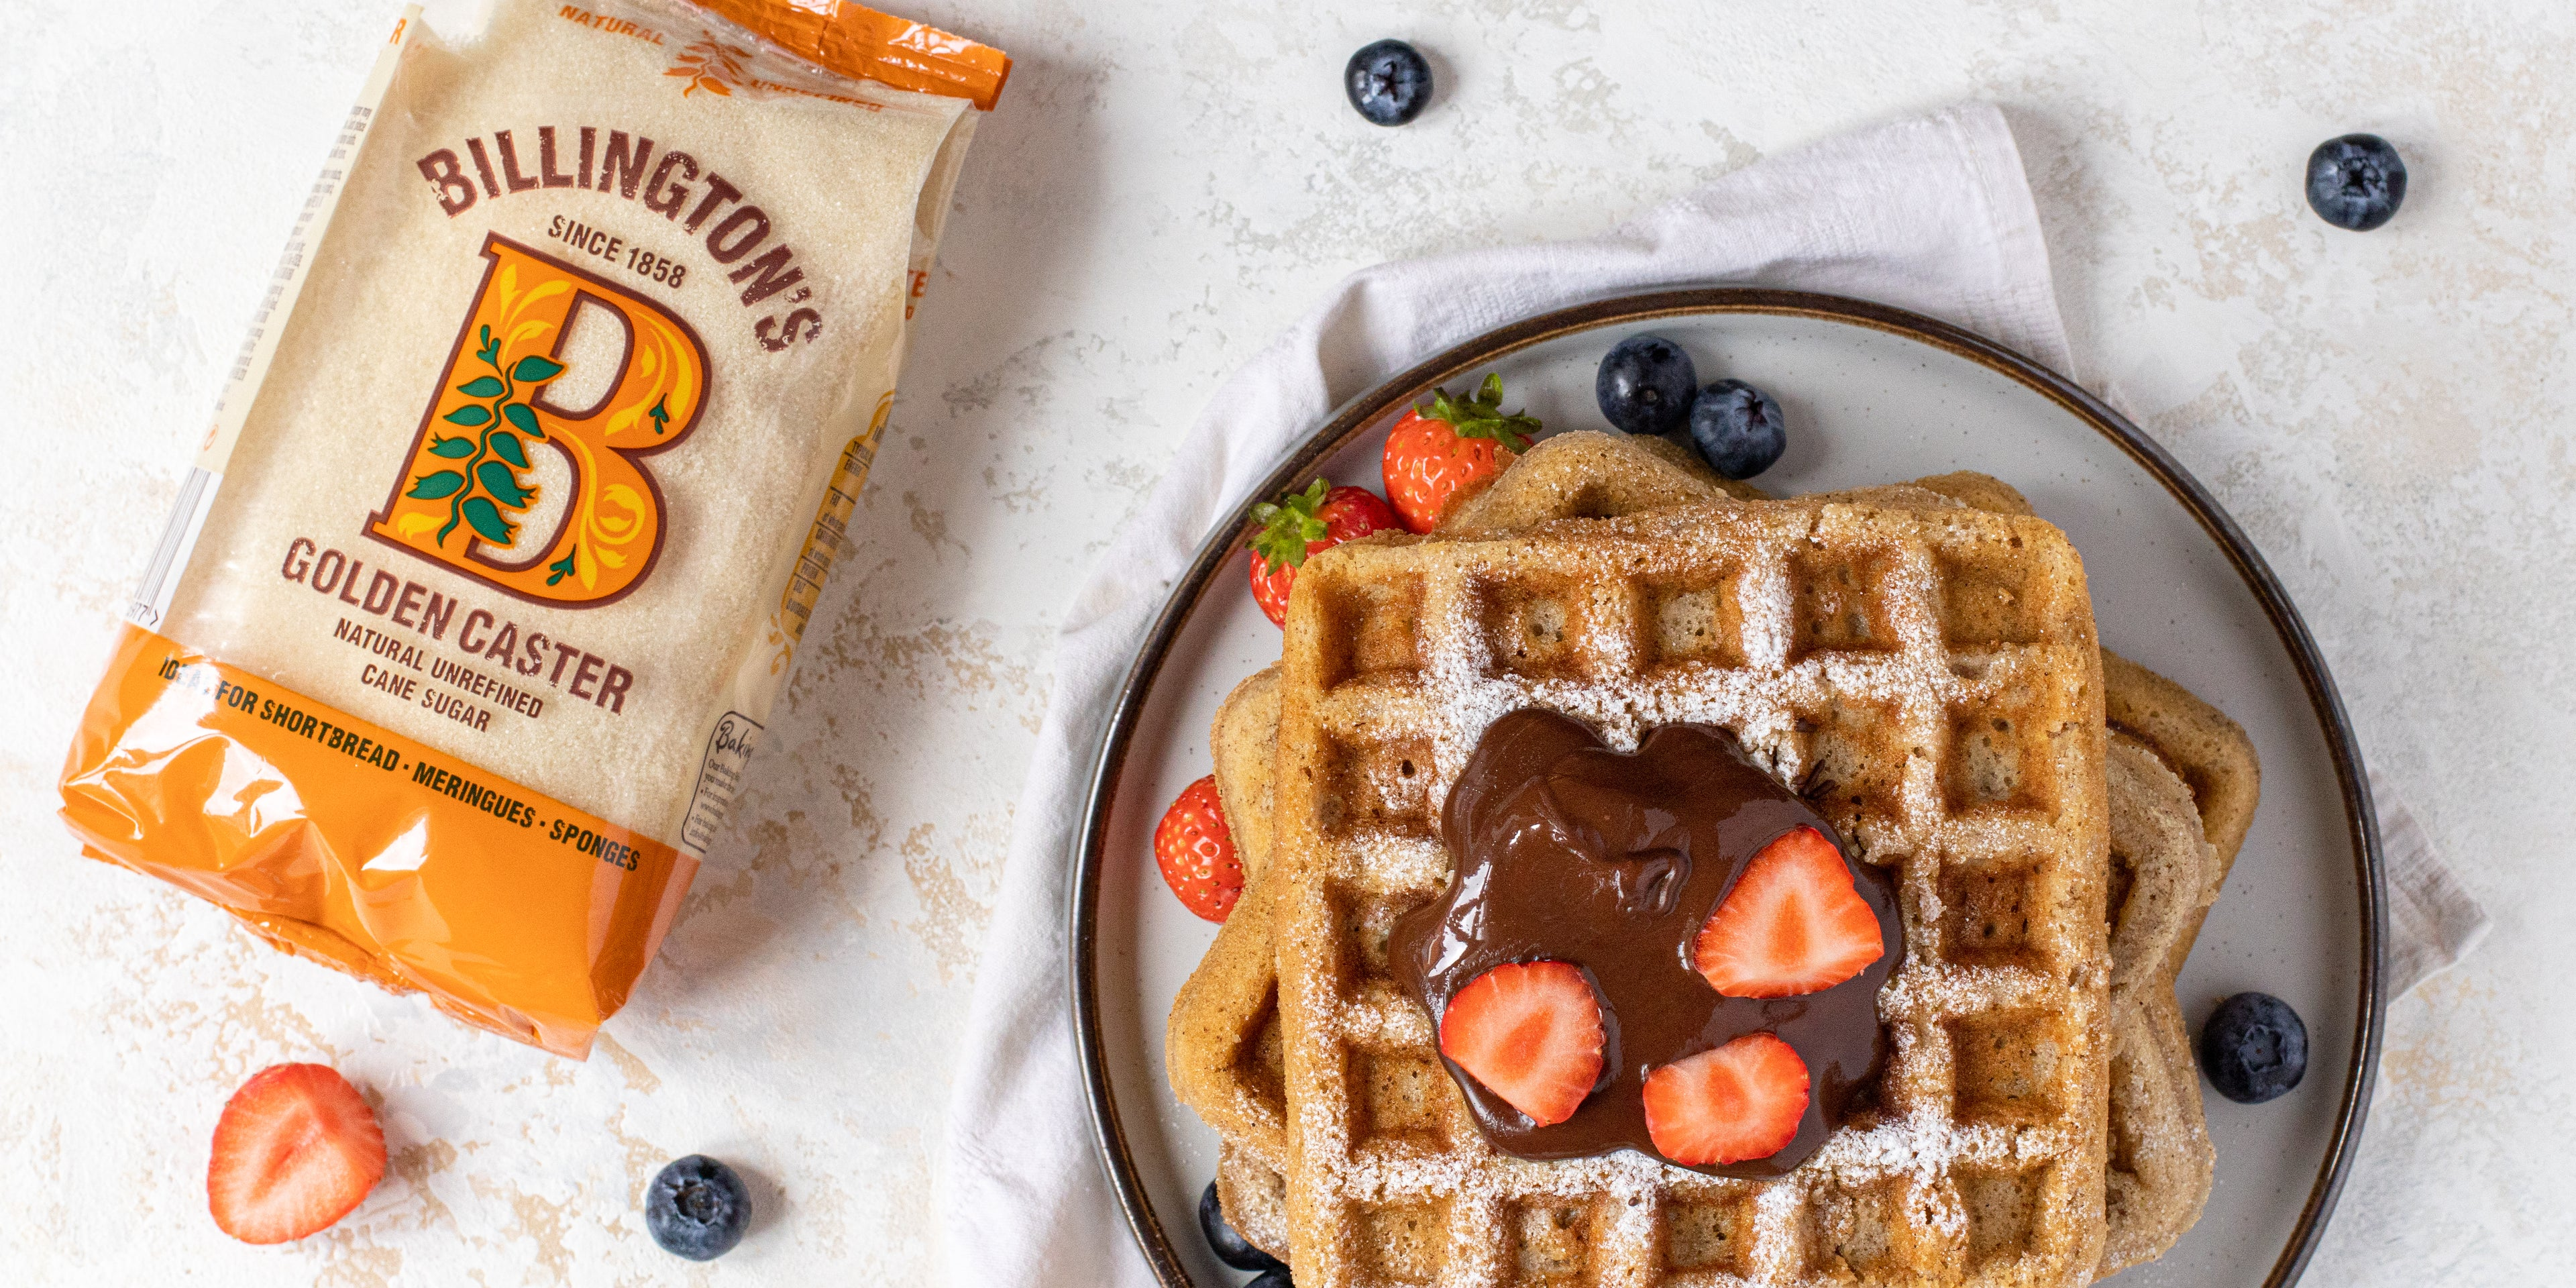 Stack of Waffles topped with chocolate and strawberries, next to a bag of Billington's Golden Caster sugar